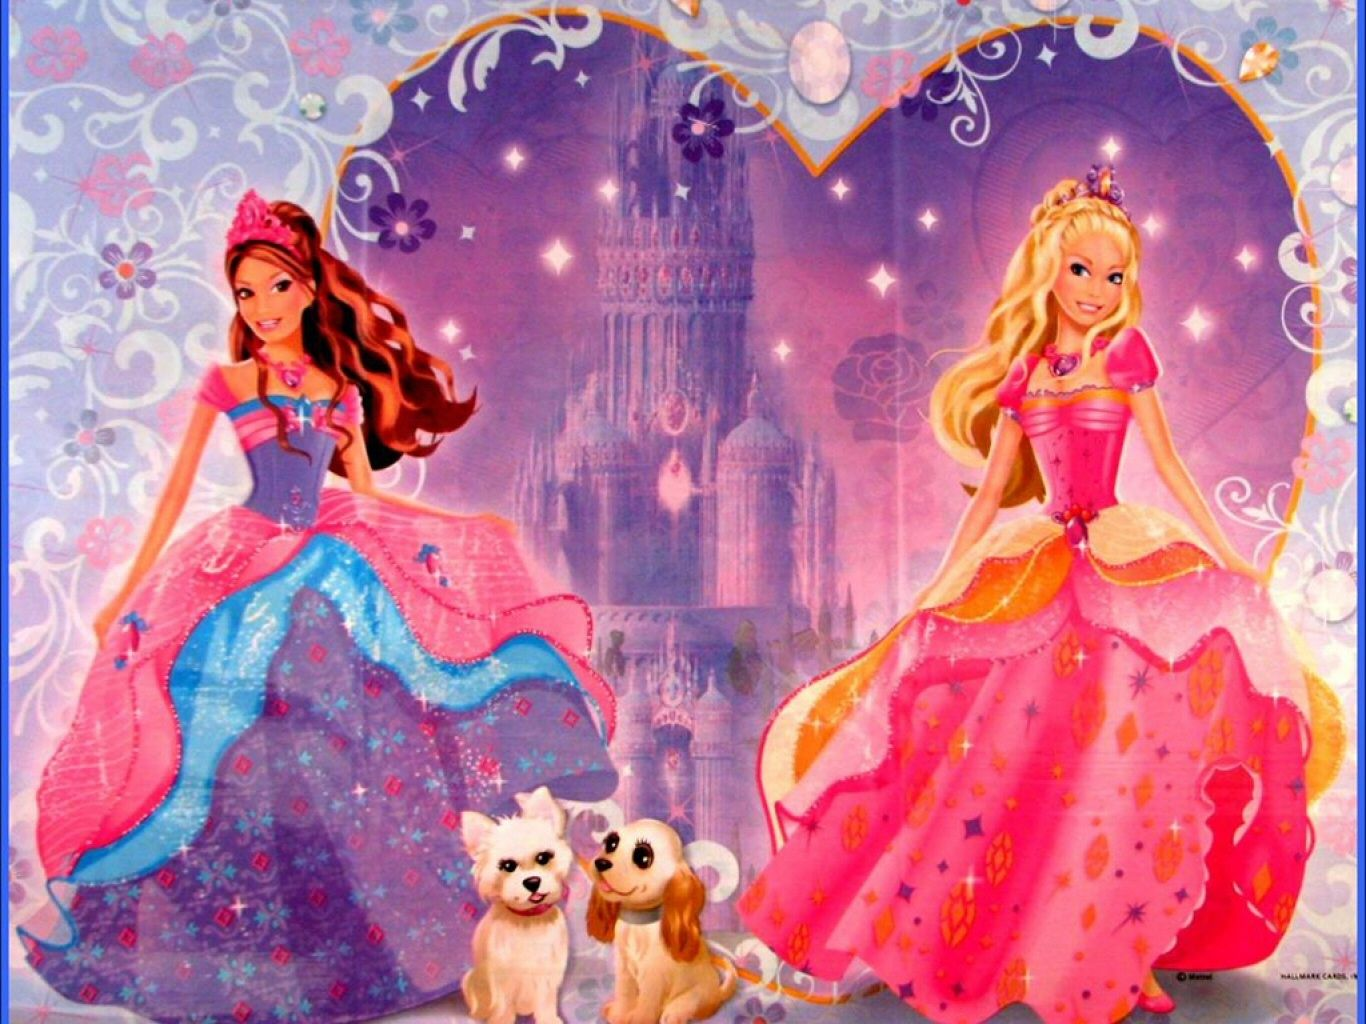 Barbie Animated Wallpapers wallpaper hd